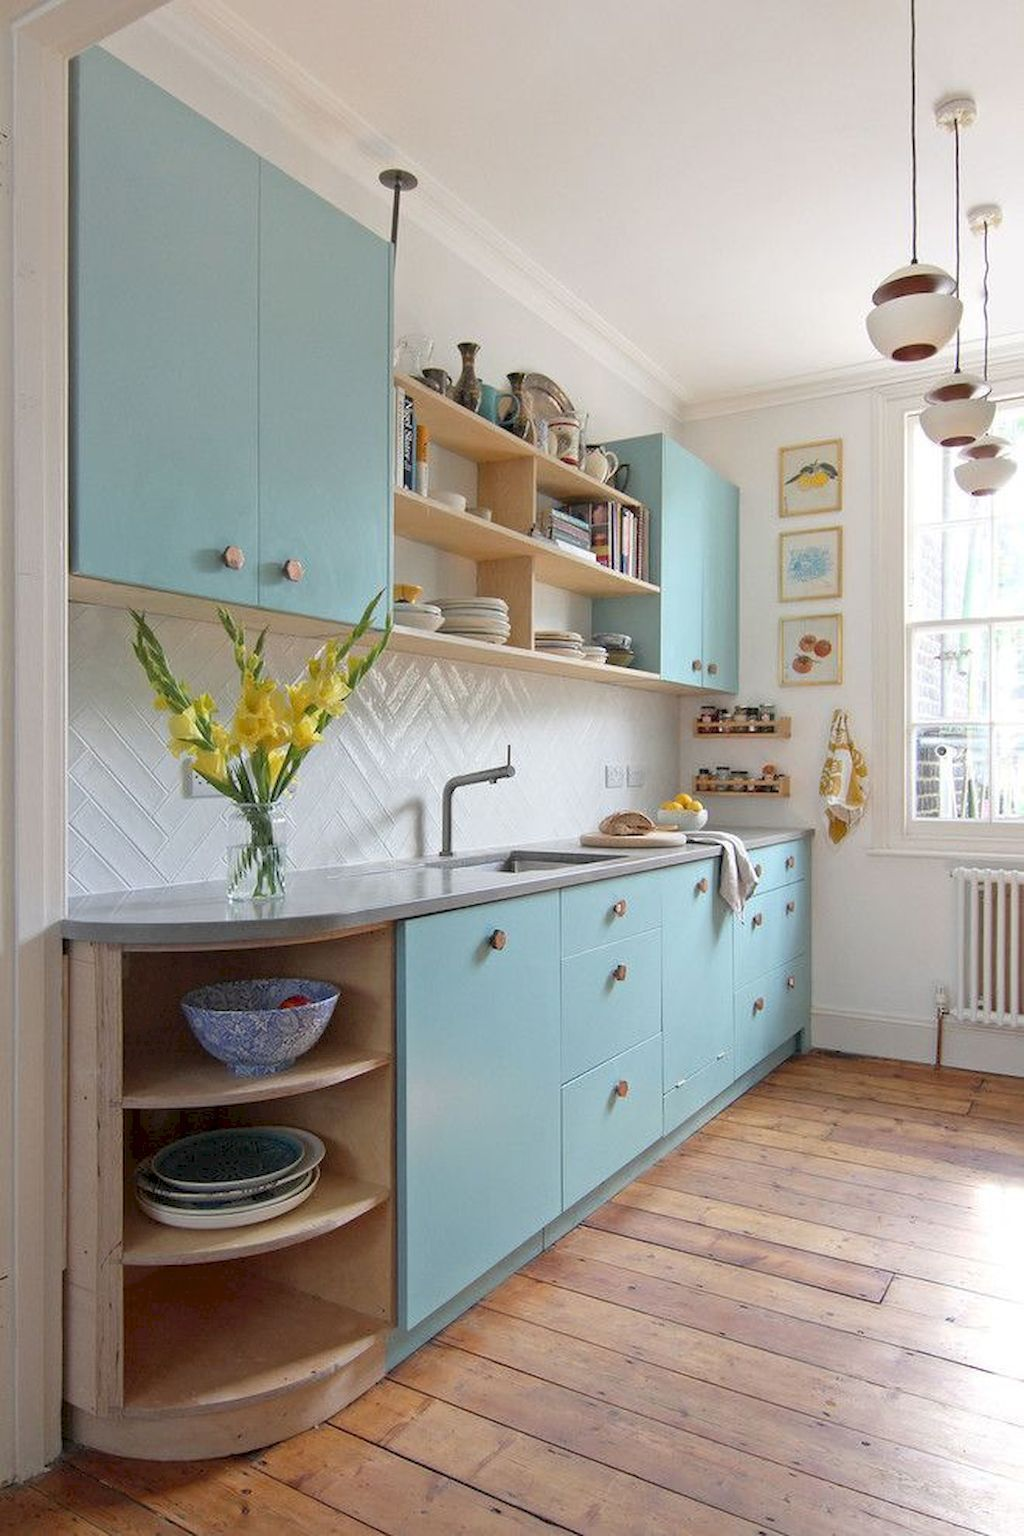 find other ideas: kitchen countertops remodeling on a budget small